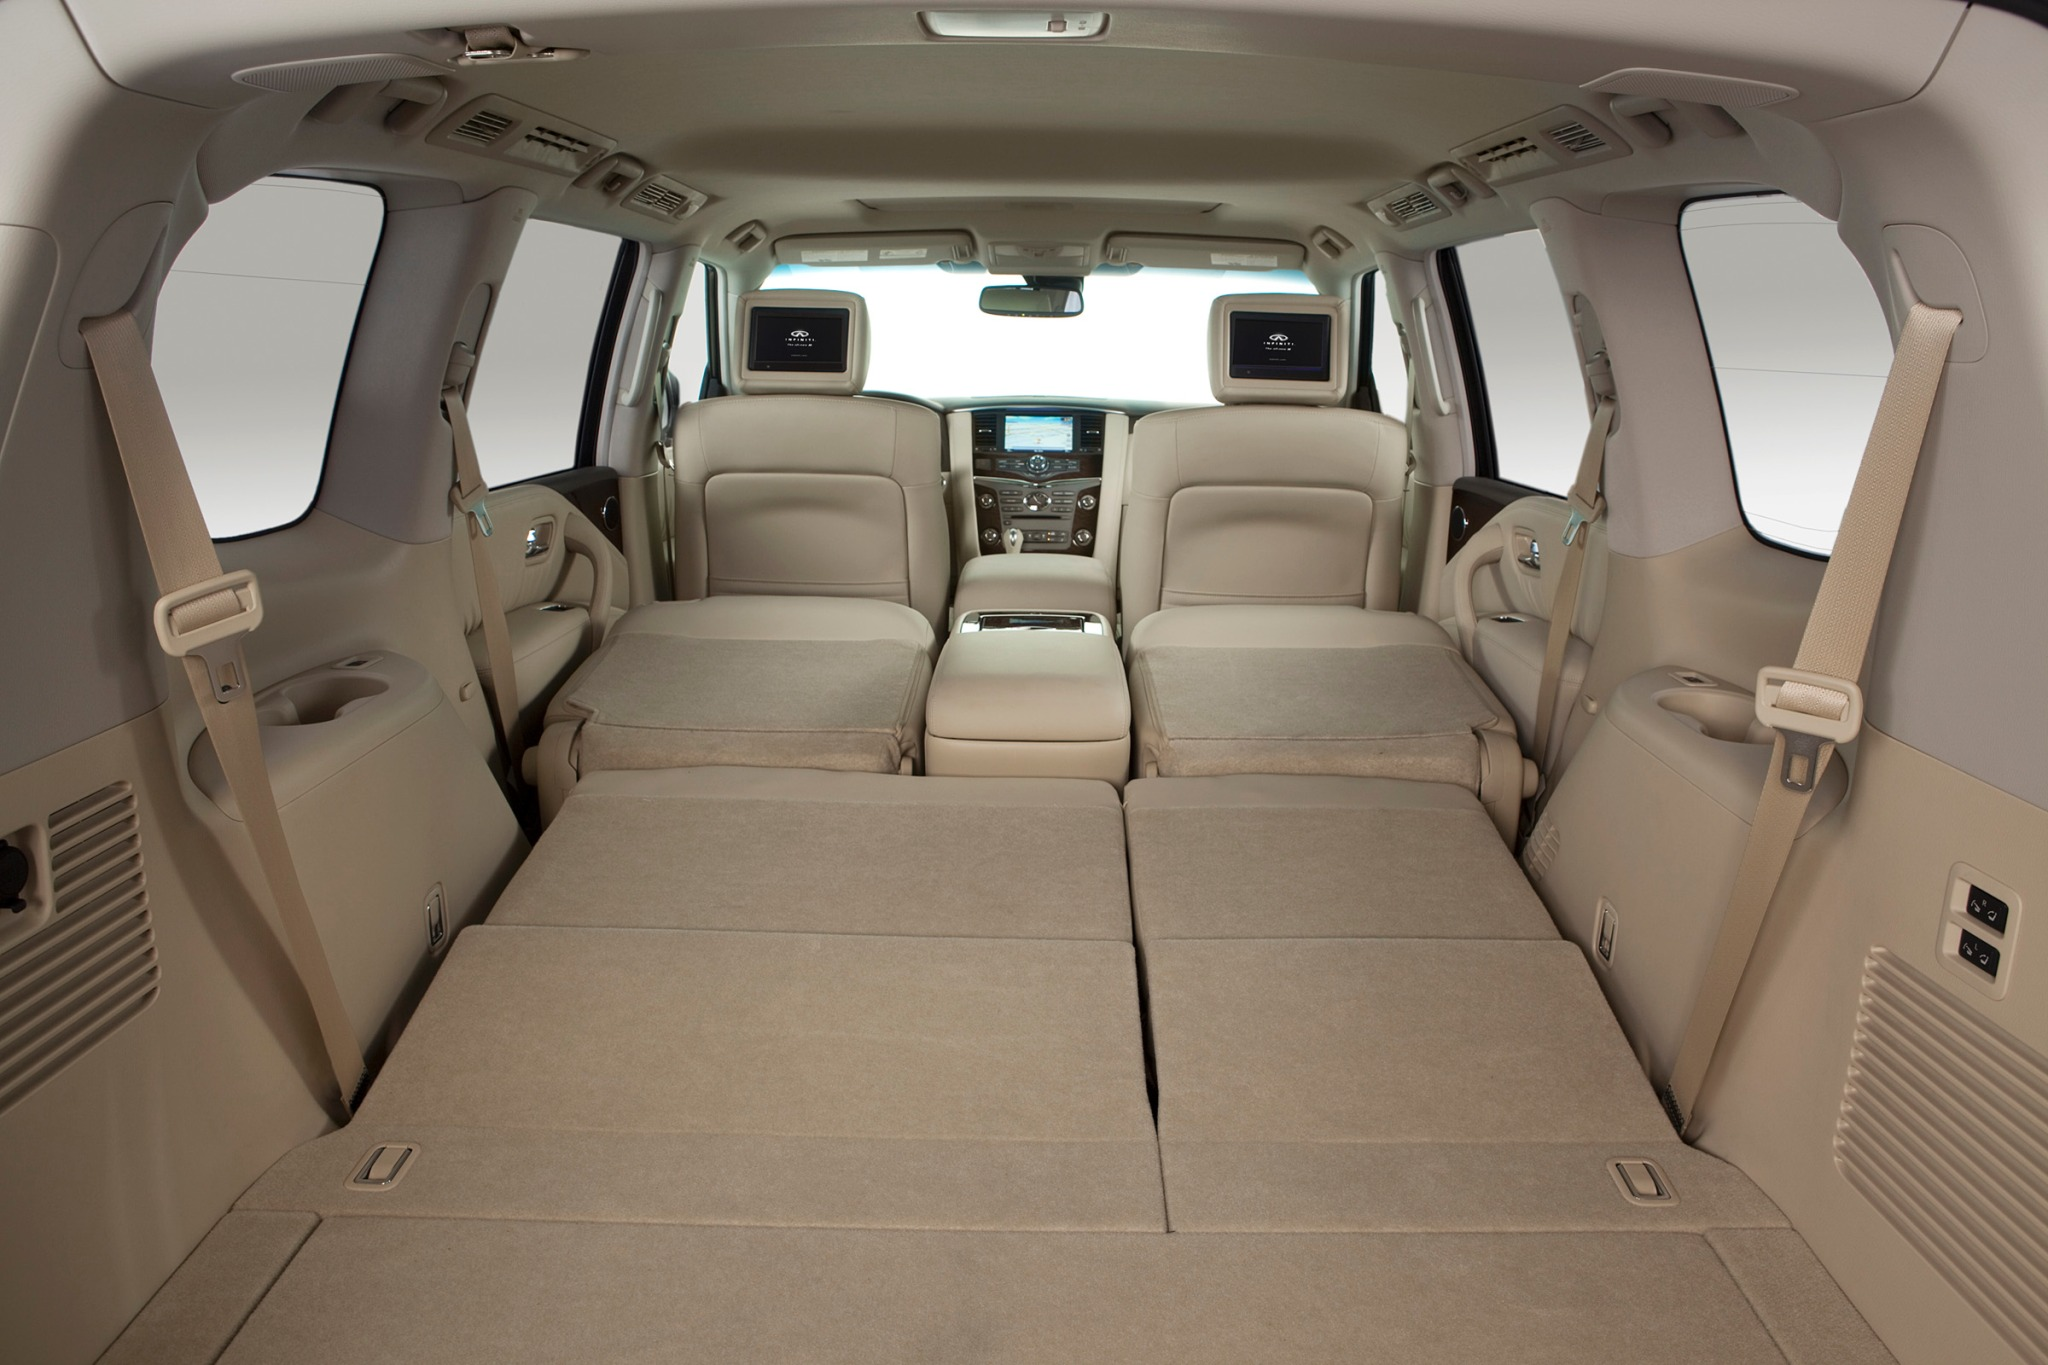 mustcars interior photos suv infiniti com pictures of